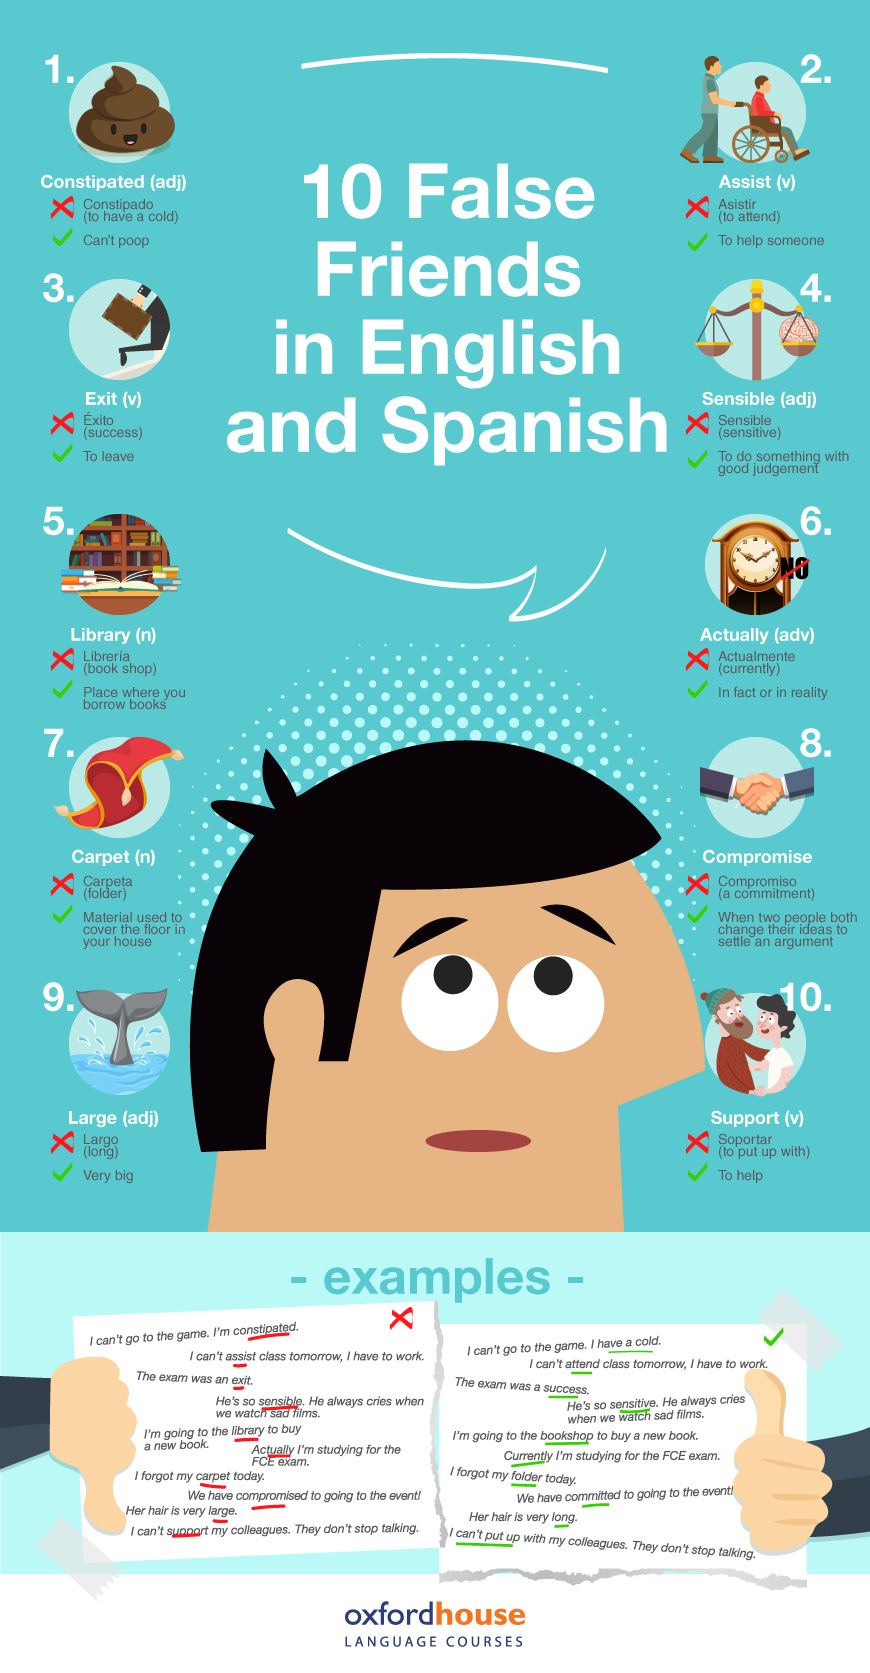 10 False Friends in English and Spanish - Infographic